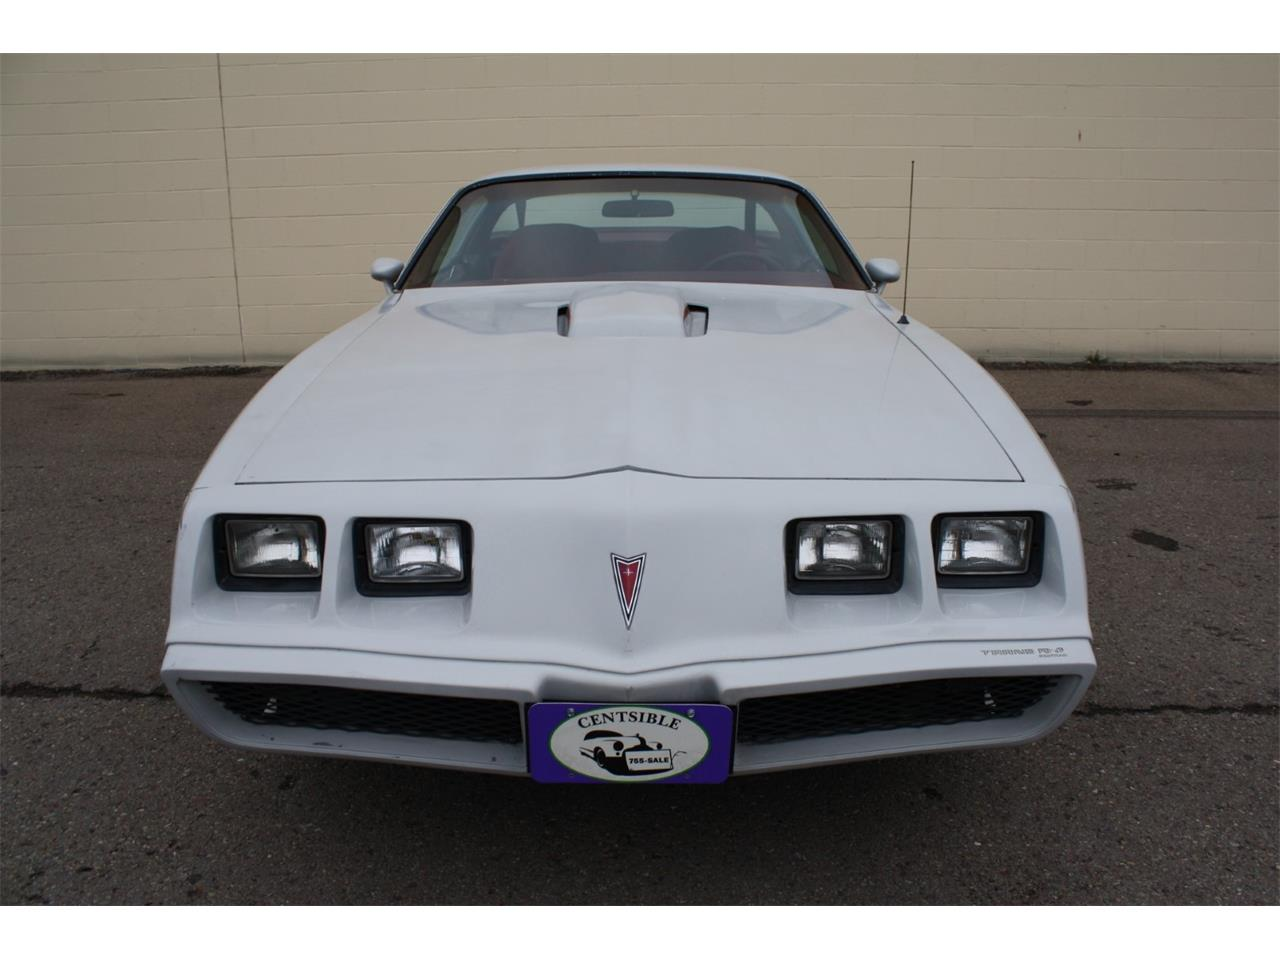 Large Picture of 1979 Pontiac Firebird Trans Am located in Washington Auction Vehicle Offered by Lucky Collector Car Auctions - Q67P